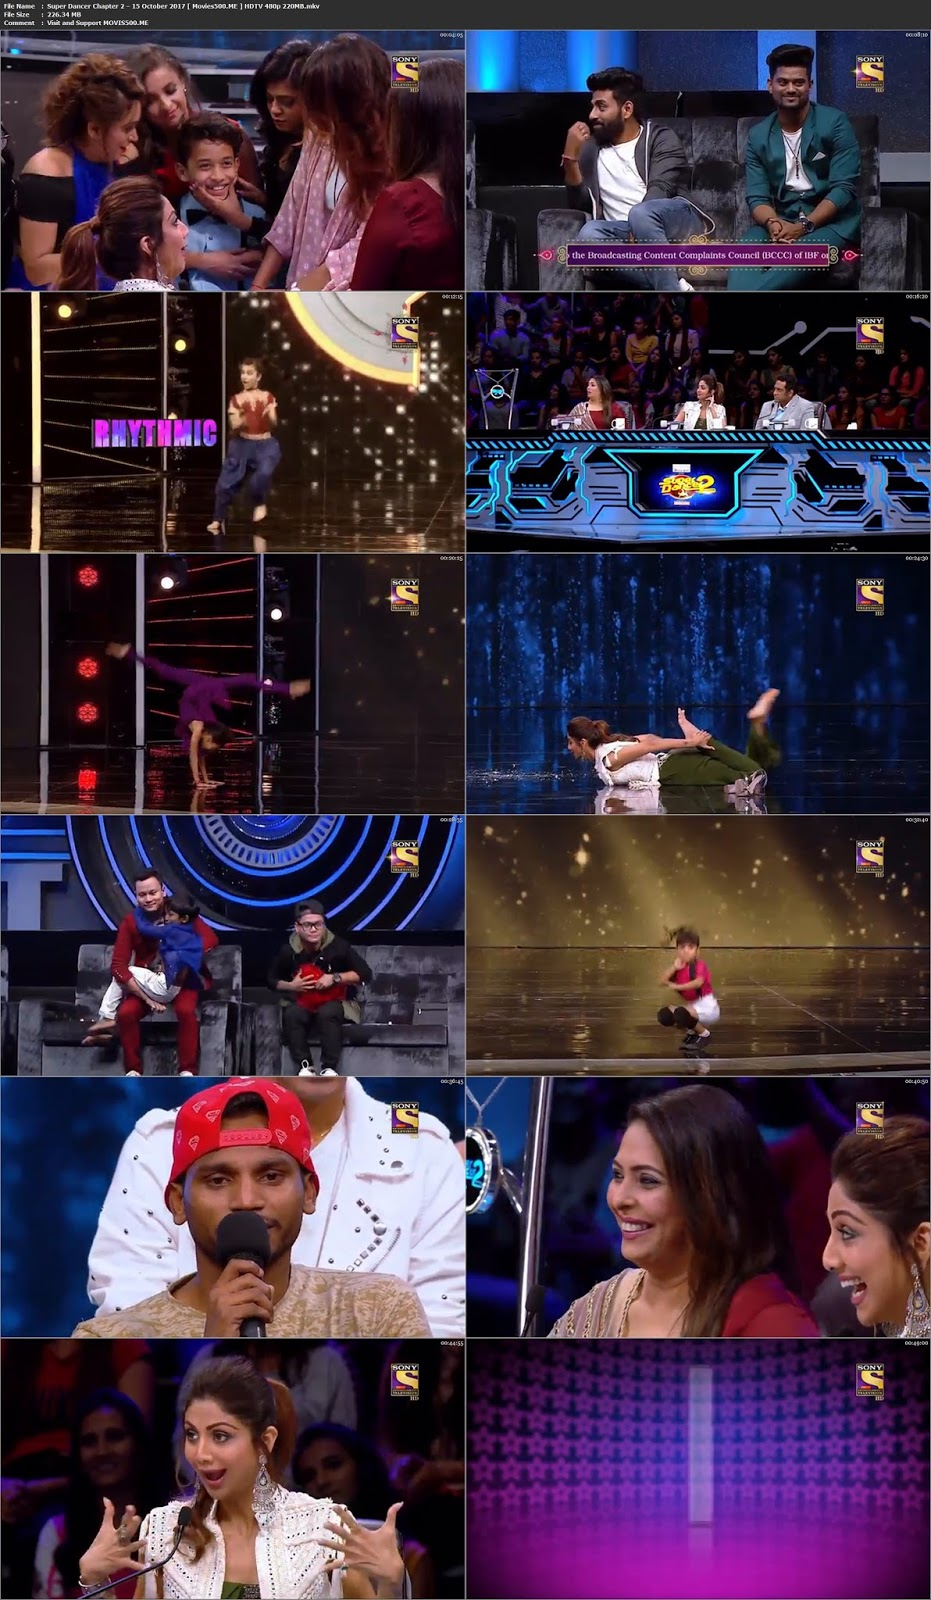 Super Dancer Chapter 2 2017 15 October 226MB HDTV 480p at 9966132.com